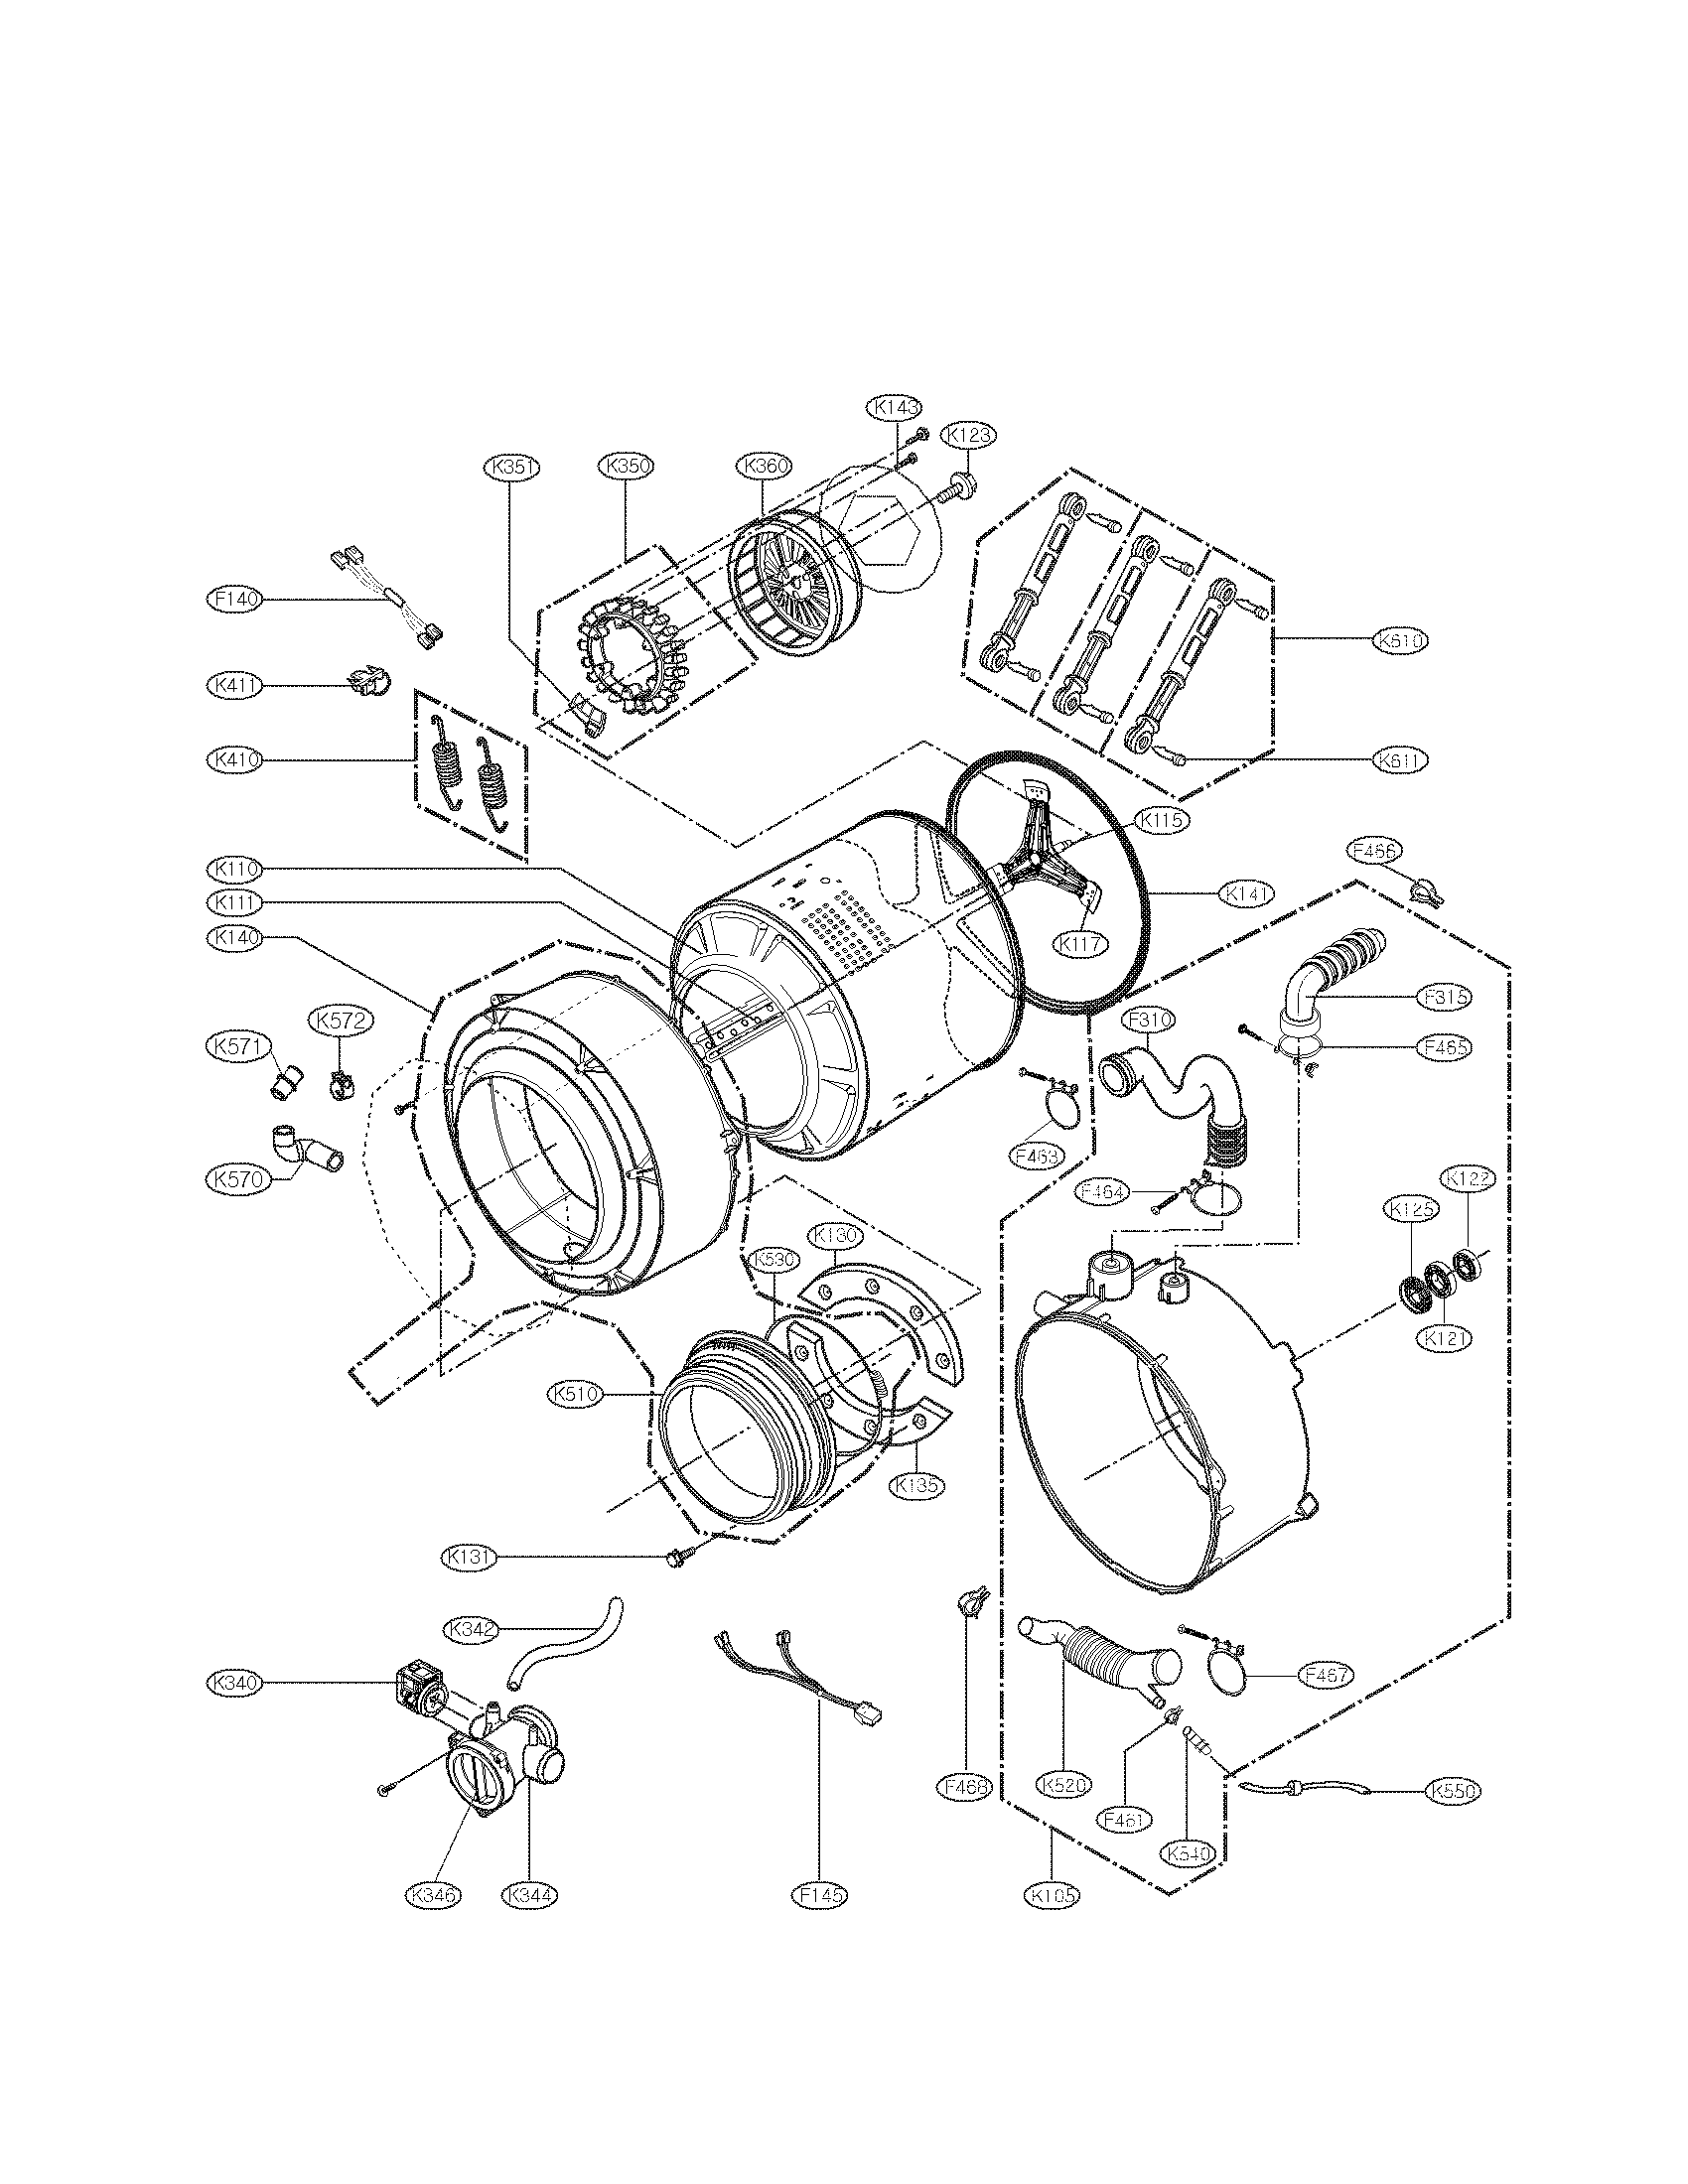 lg front load washer parts diagram ems stinger 4424 v4 wiring